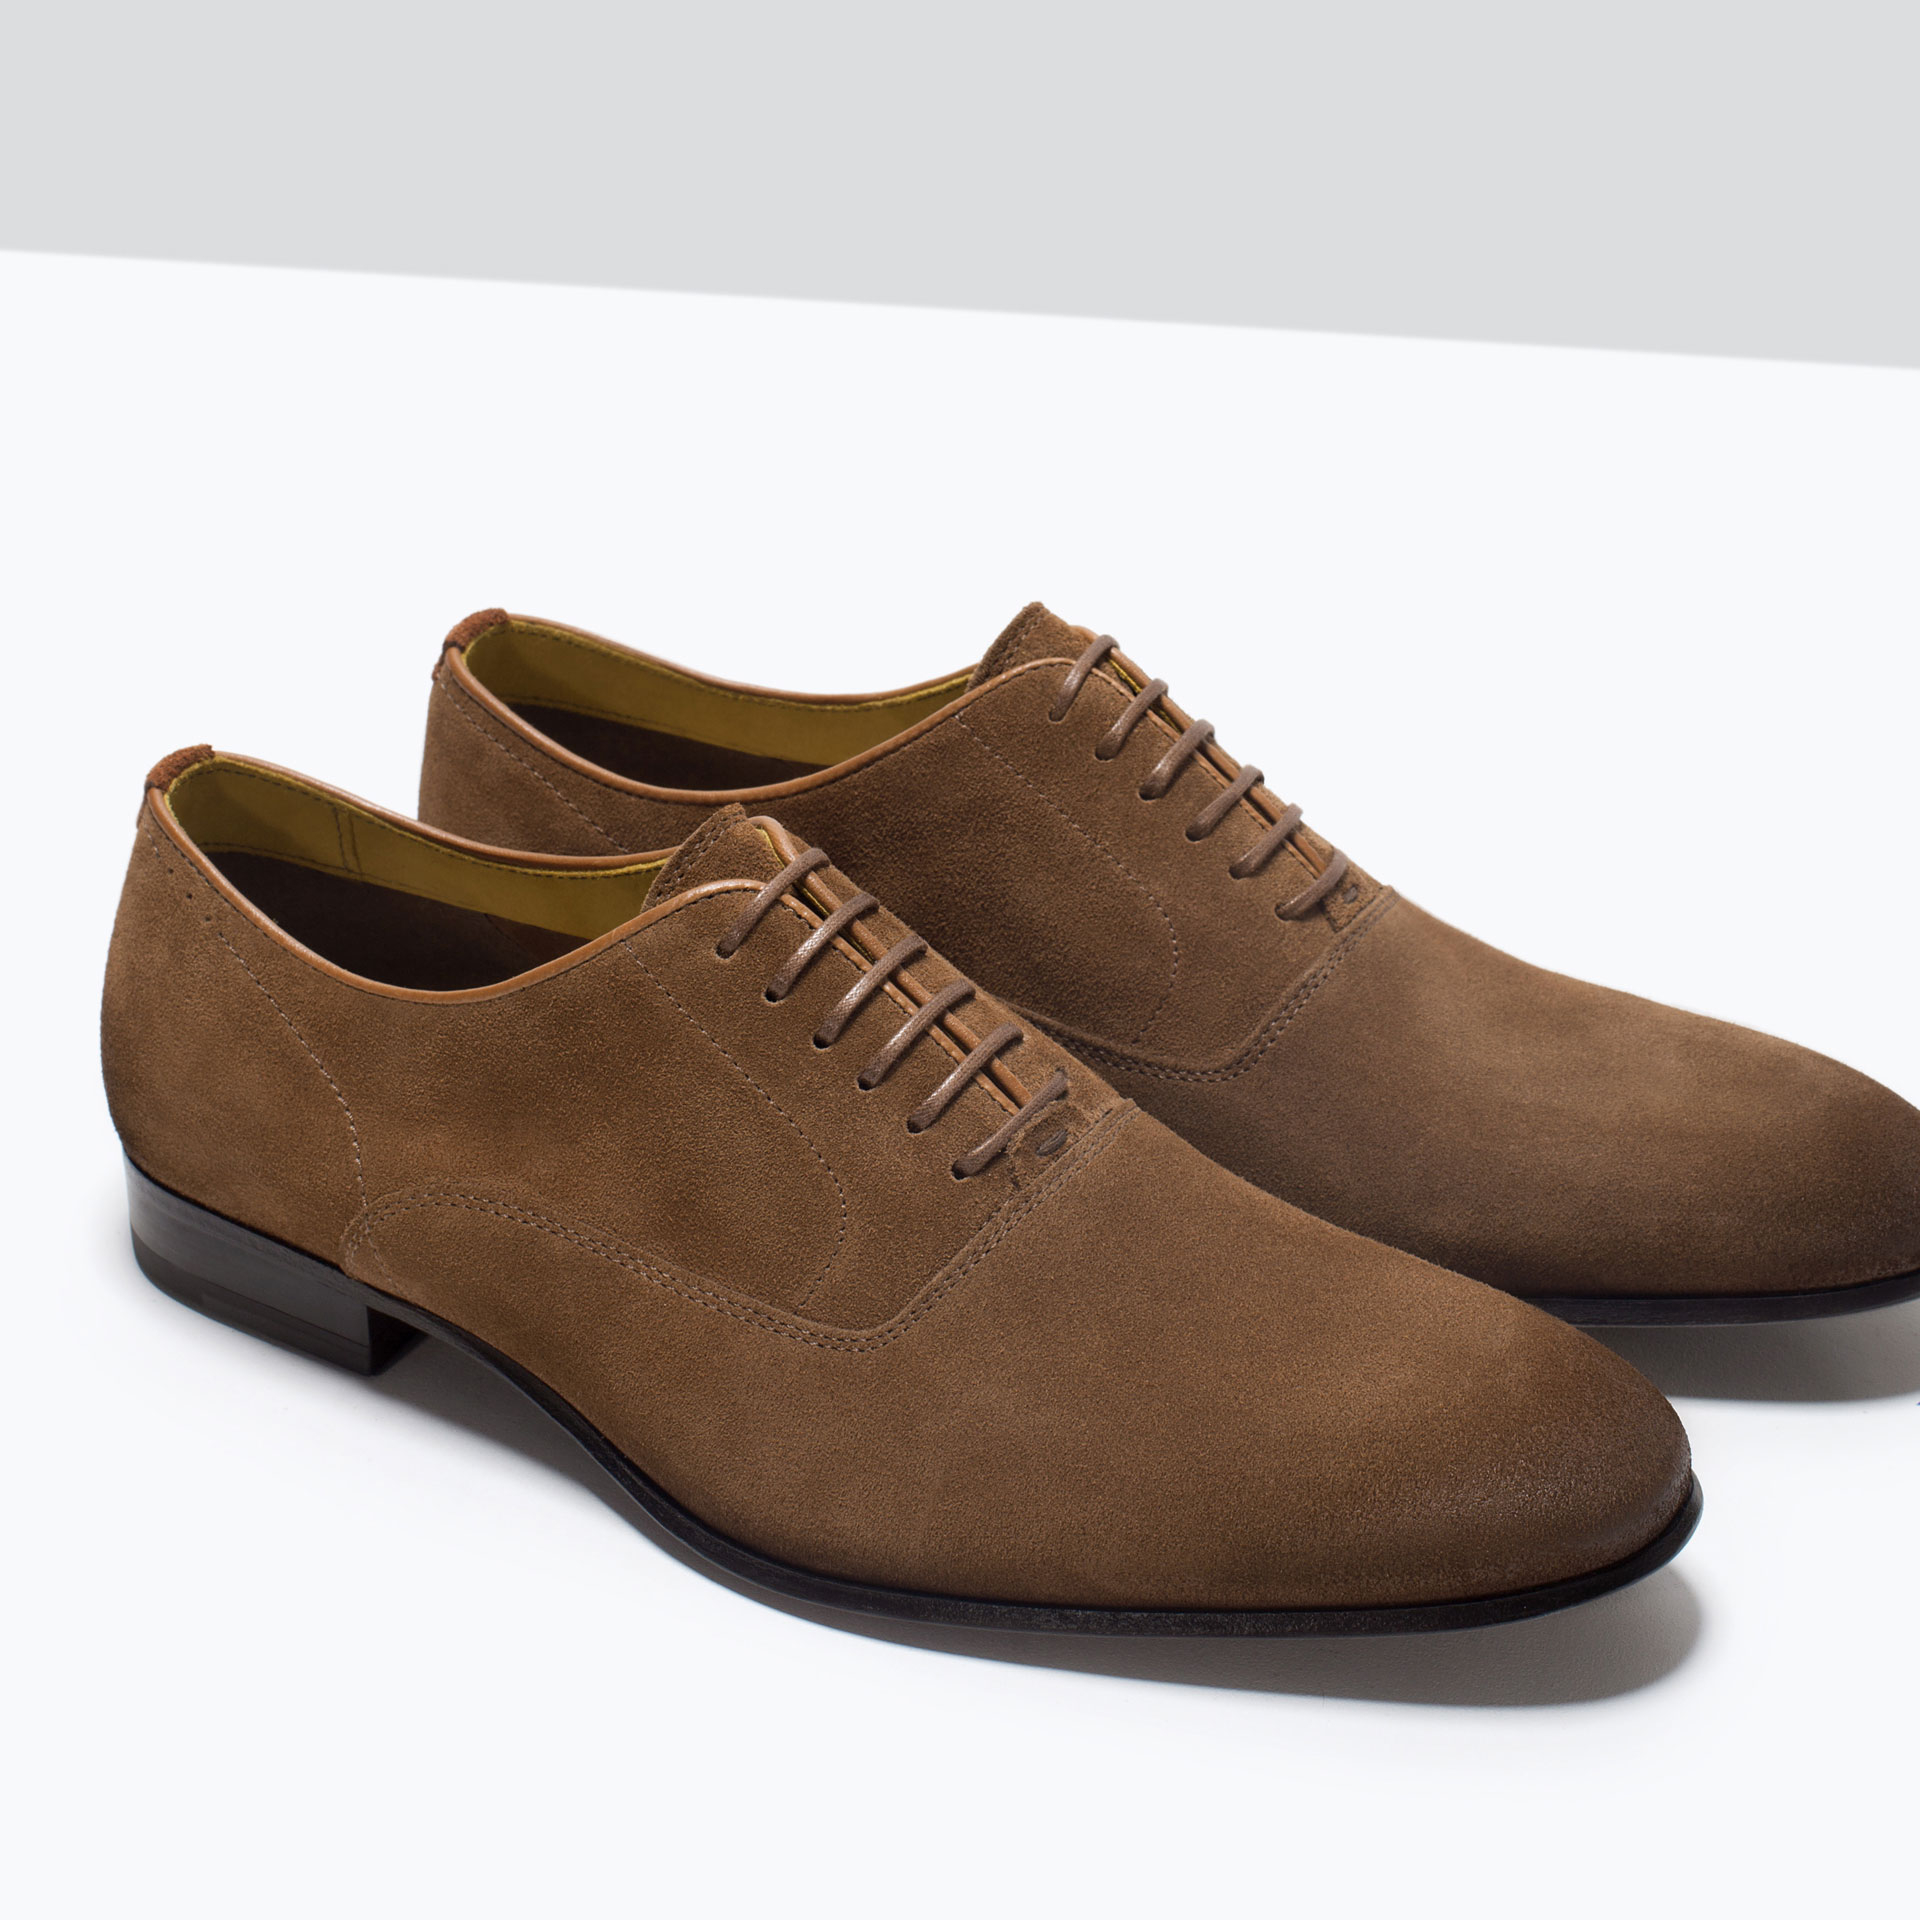 Jefferson Hack collaboration, Brown suede Oxford shoes, Fabric and leather lining, leather and rubber soles, Made in Italy, Comes with a branded dust bag and spare laces Color: brownPrice: $